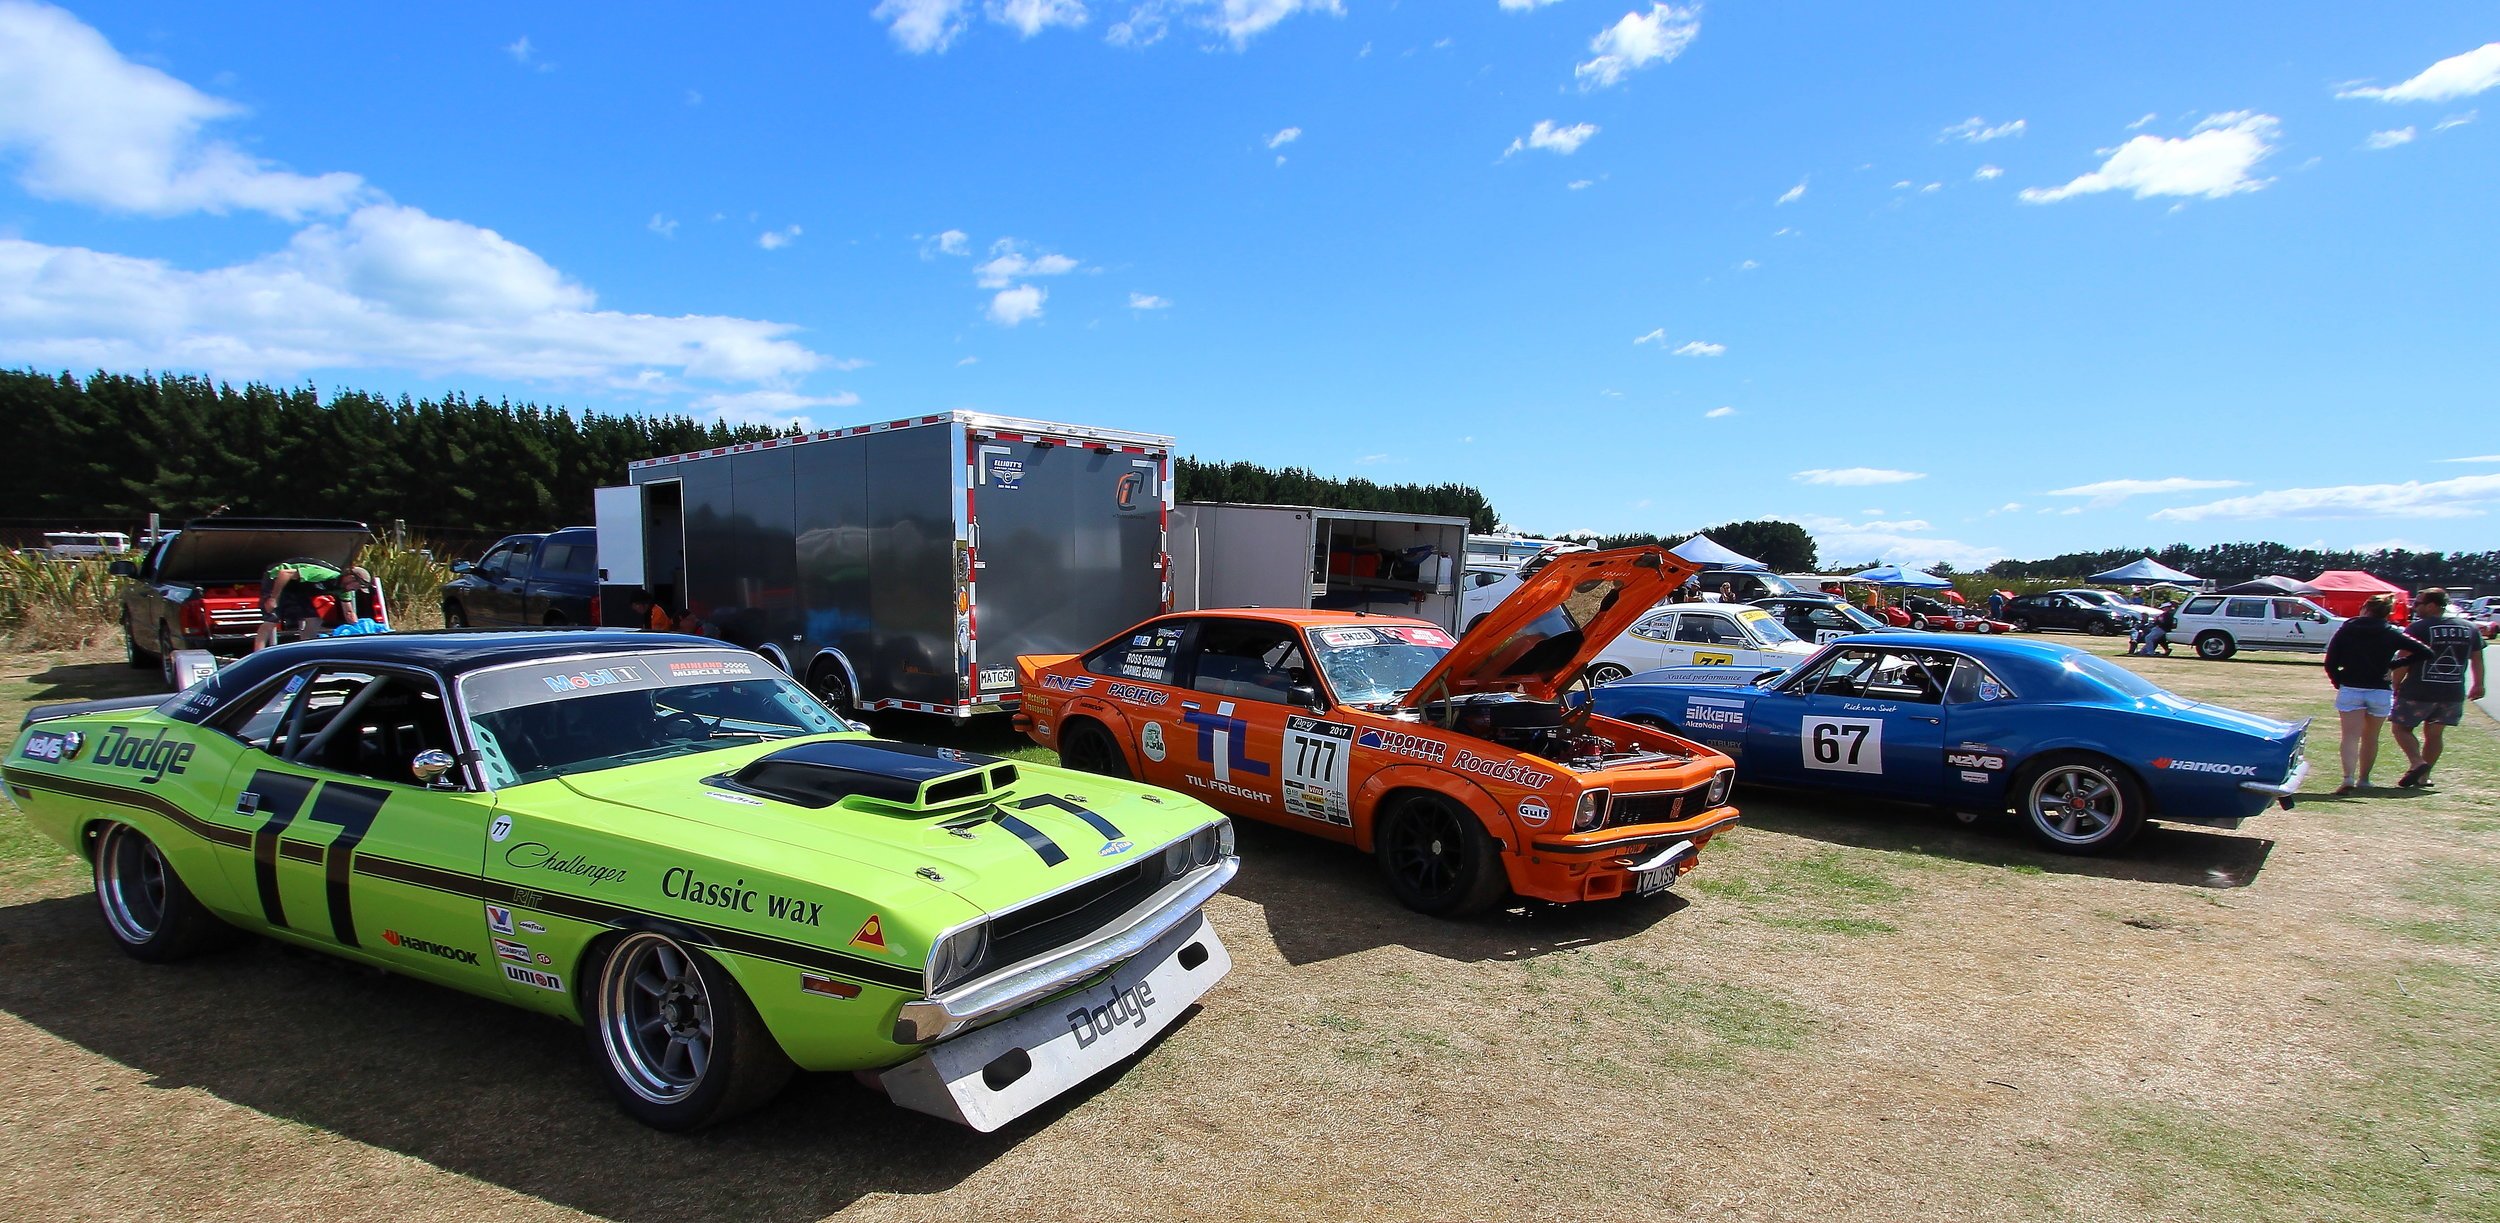 Classic saloons with Duane Ingley's (Queenstown) Dodge Challenger (#77) and Ross Graham's (New Plymouth) Holden Torana (#777) and Rick van Swet's (Auckland) Chevrolet Camaro (#67)